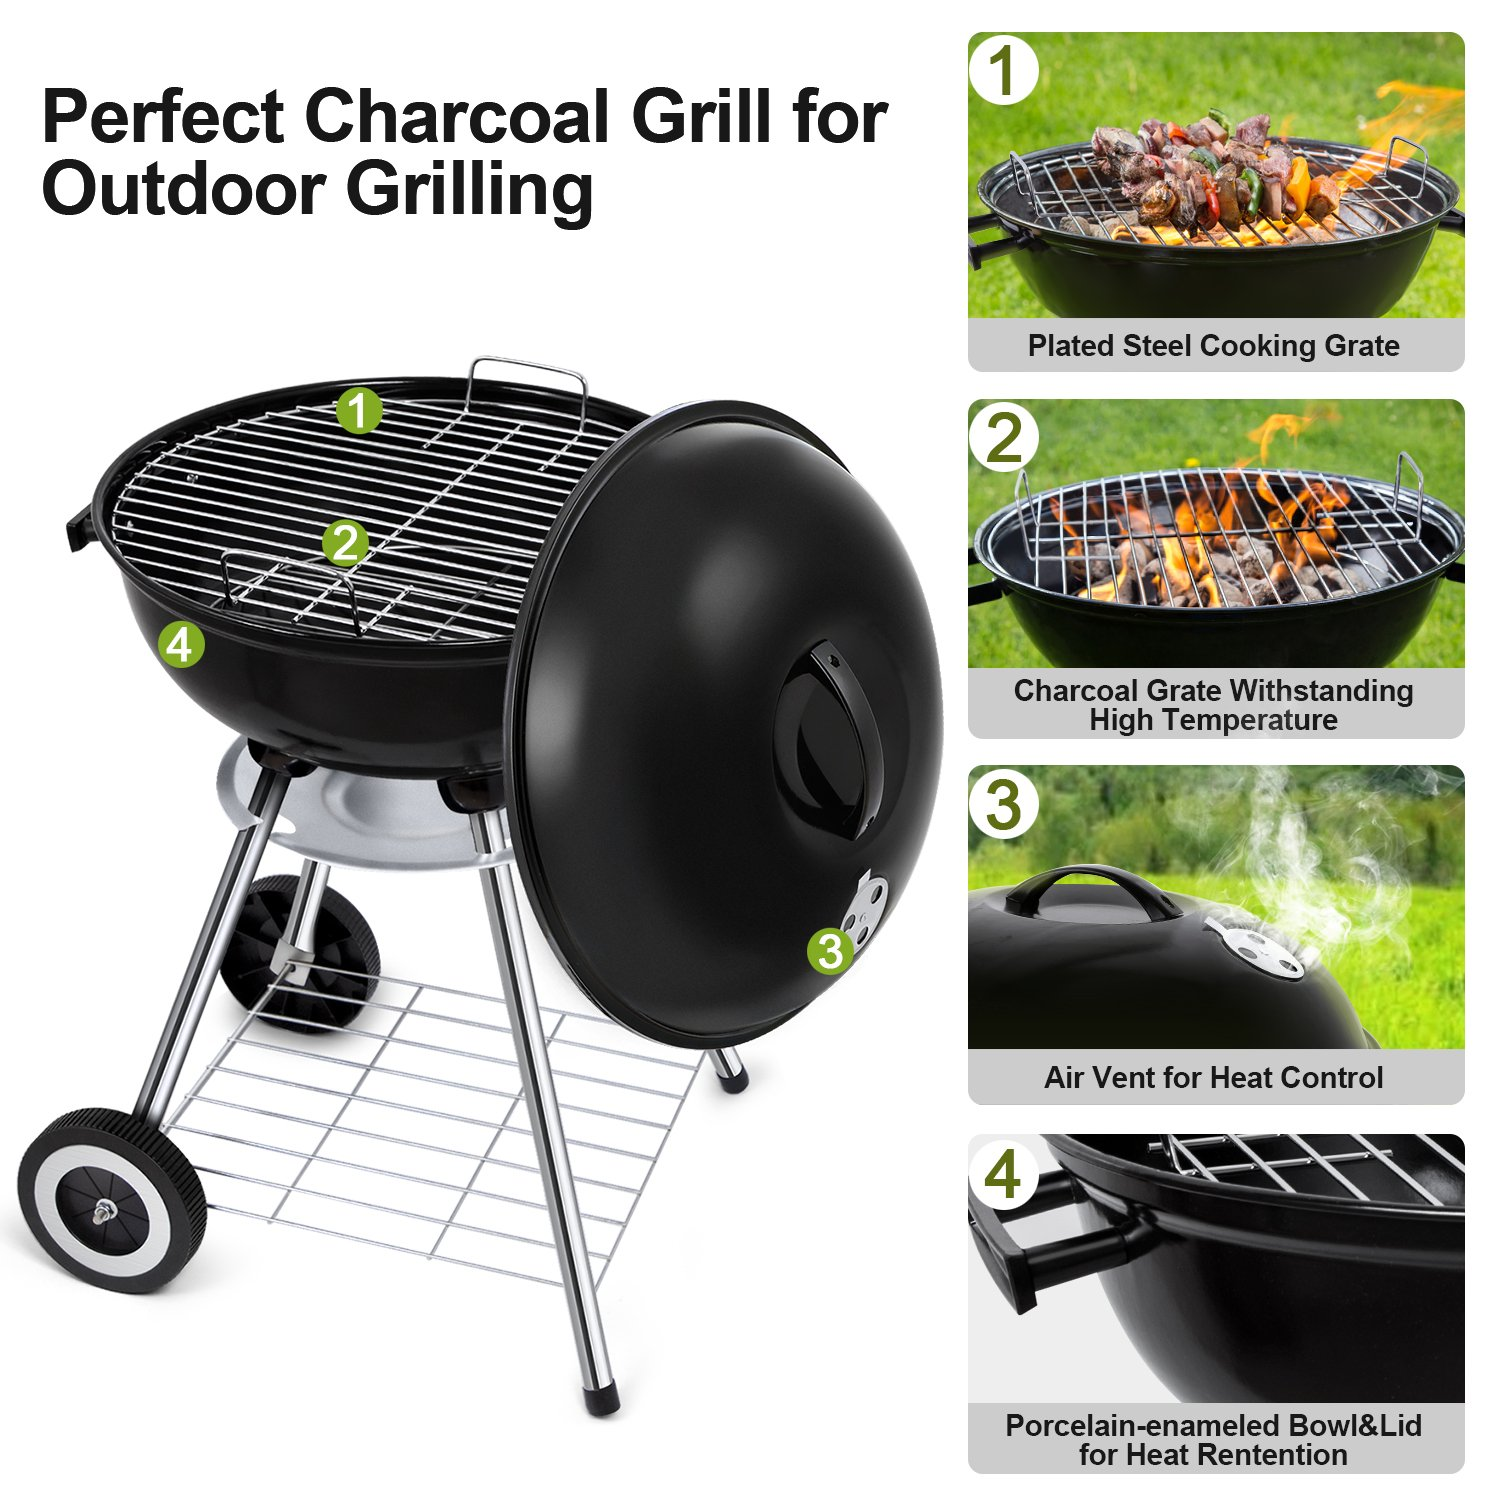 Best Charcoal Grill Reviews and Buying Guide 9